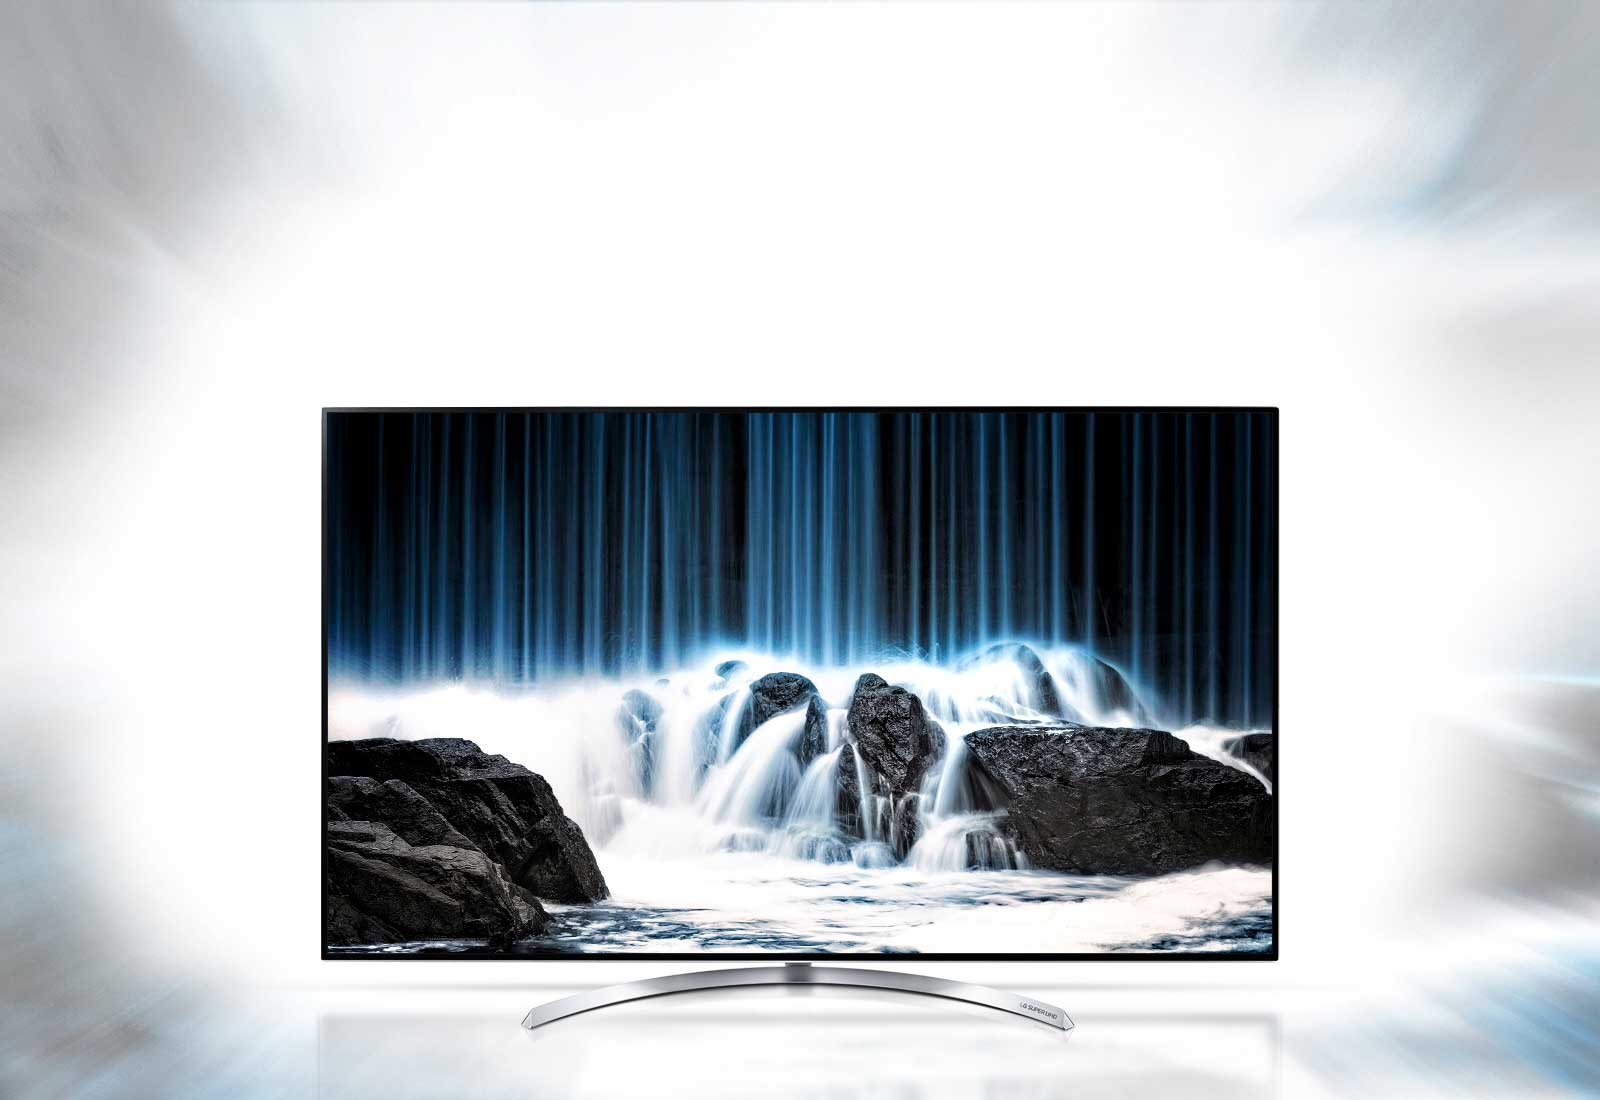 LG TV's - Immersive sound from audio experts